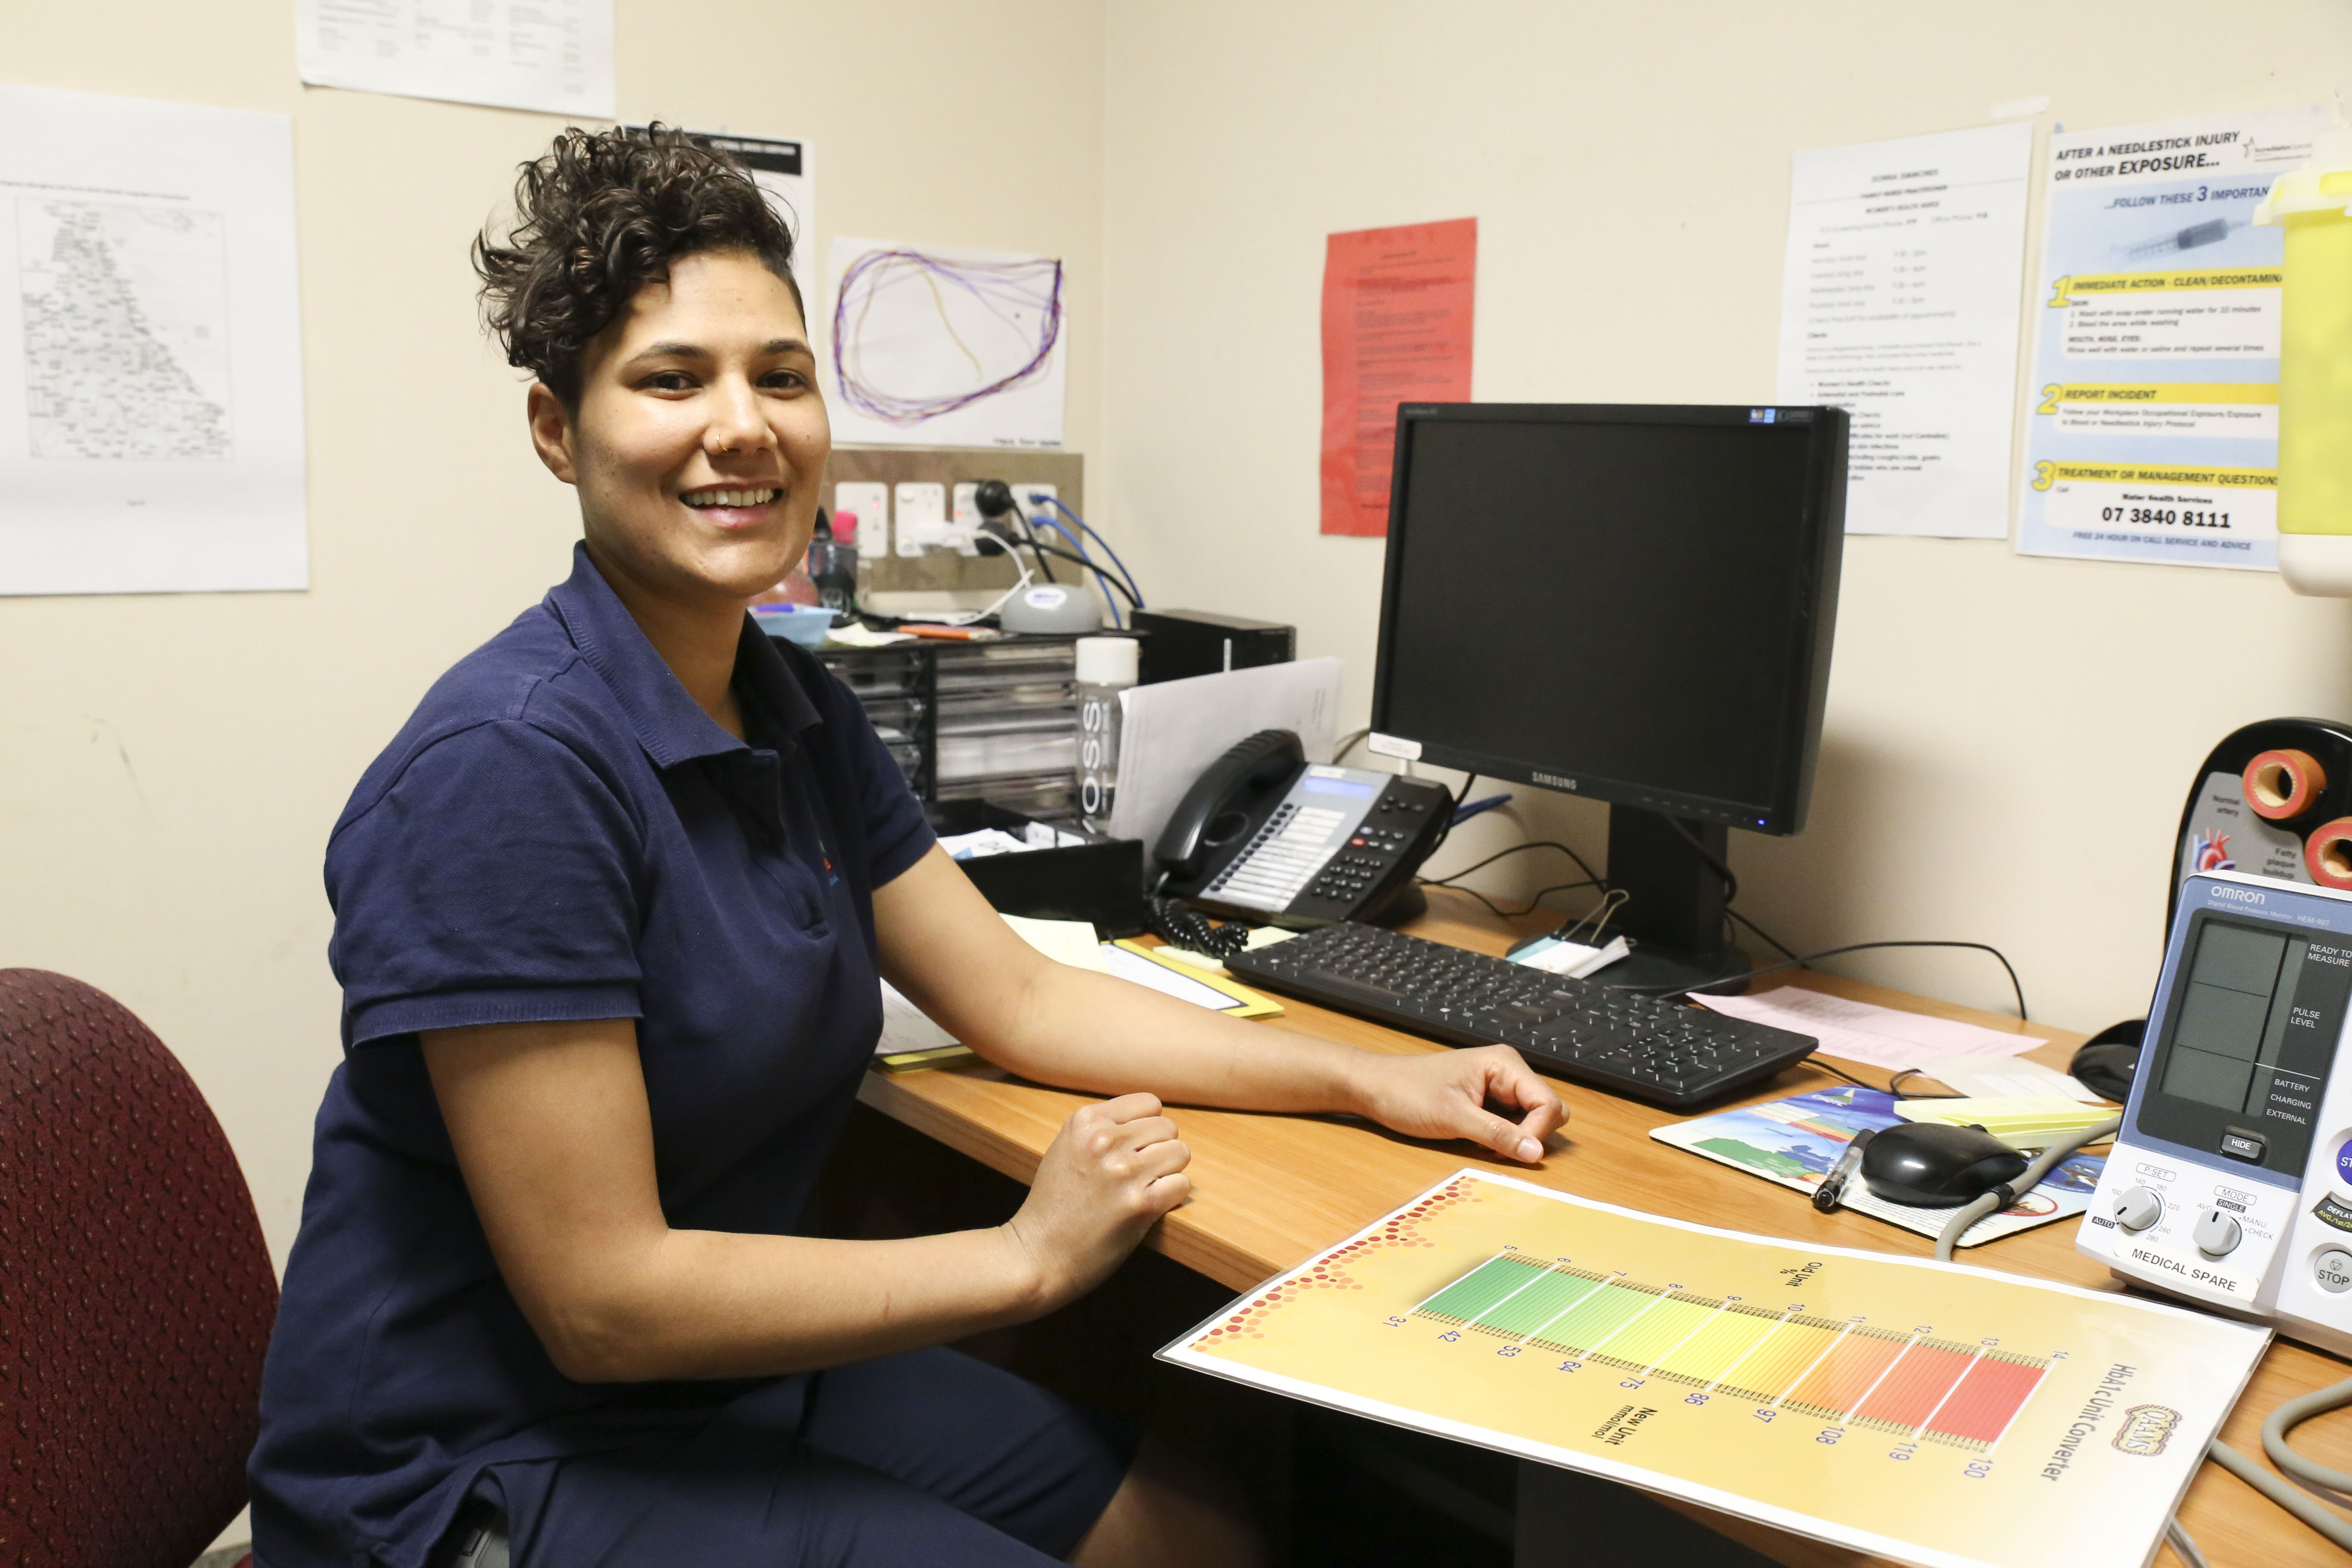 Tips for making the most of the Aboriginal Health Worker and Practitioner workforce